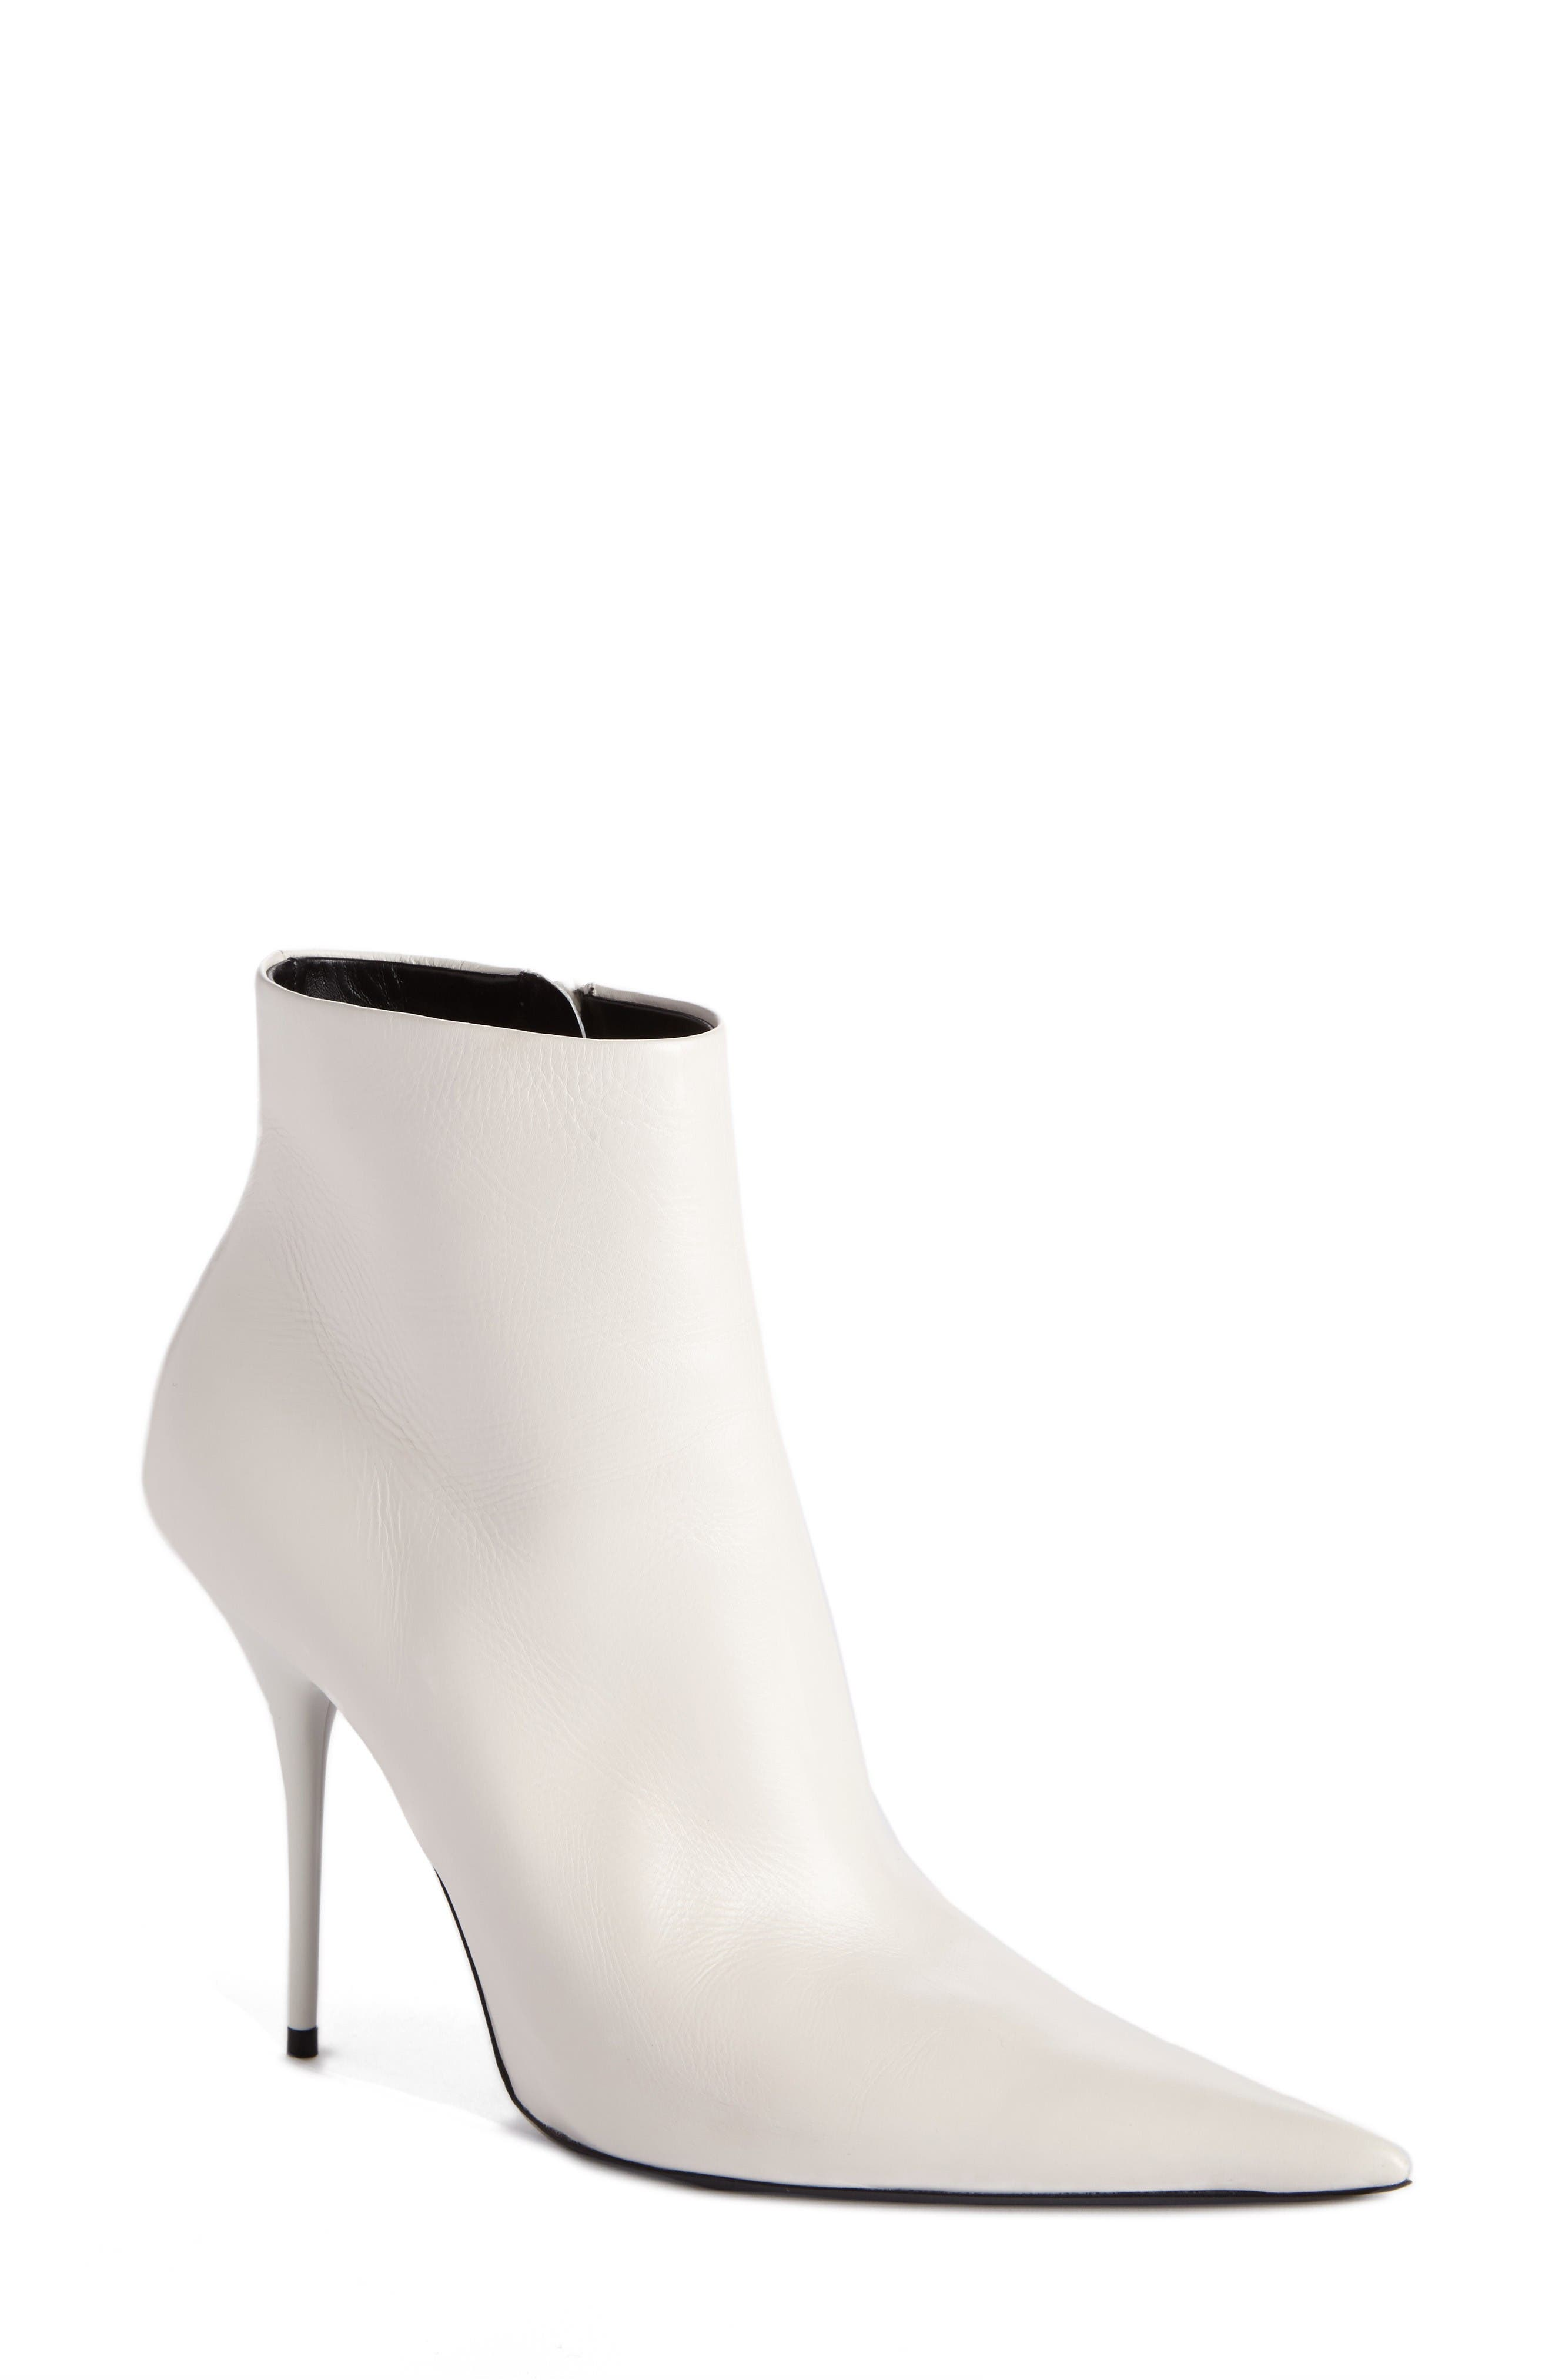 Balenciaga Pointy Toe Bootie (Women)